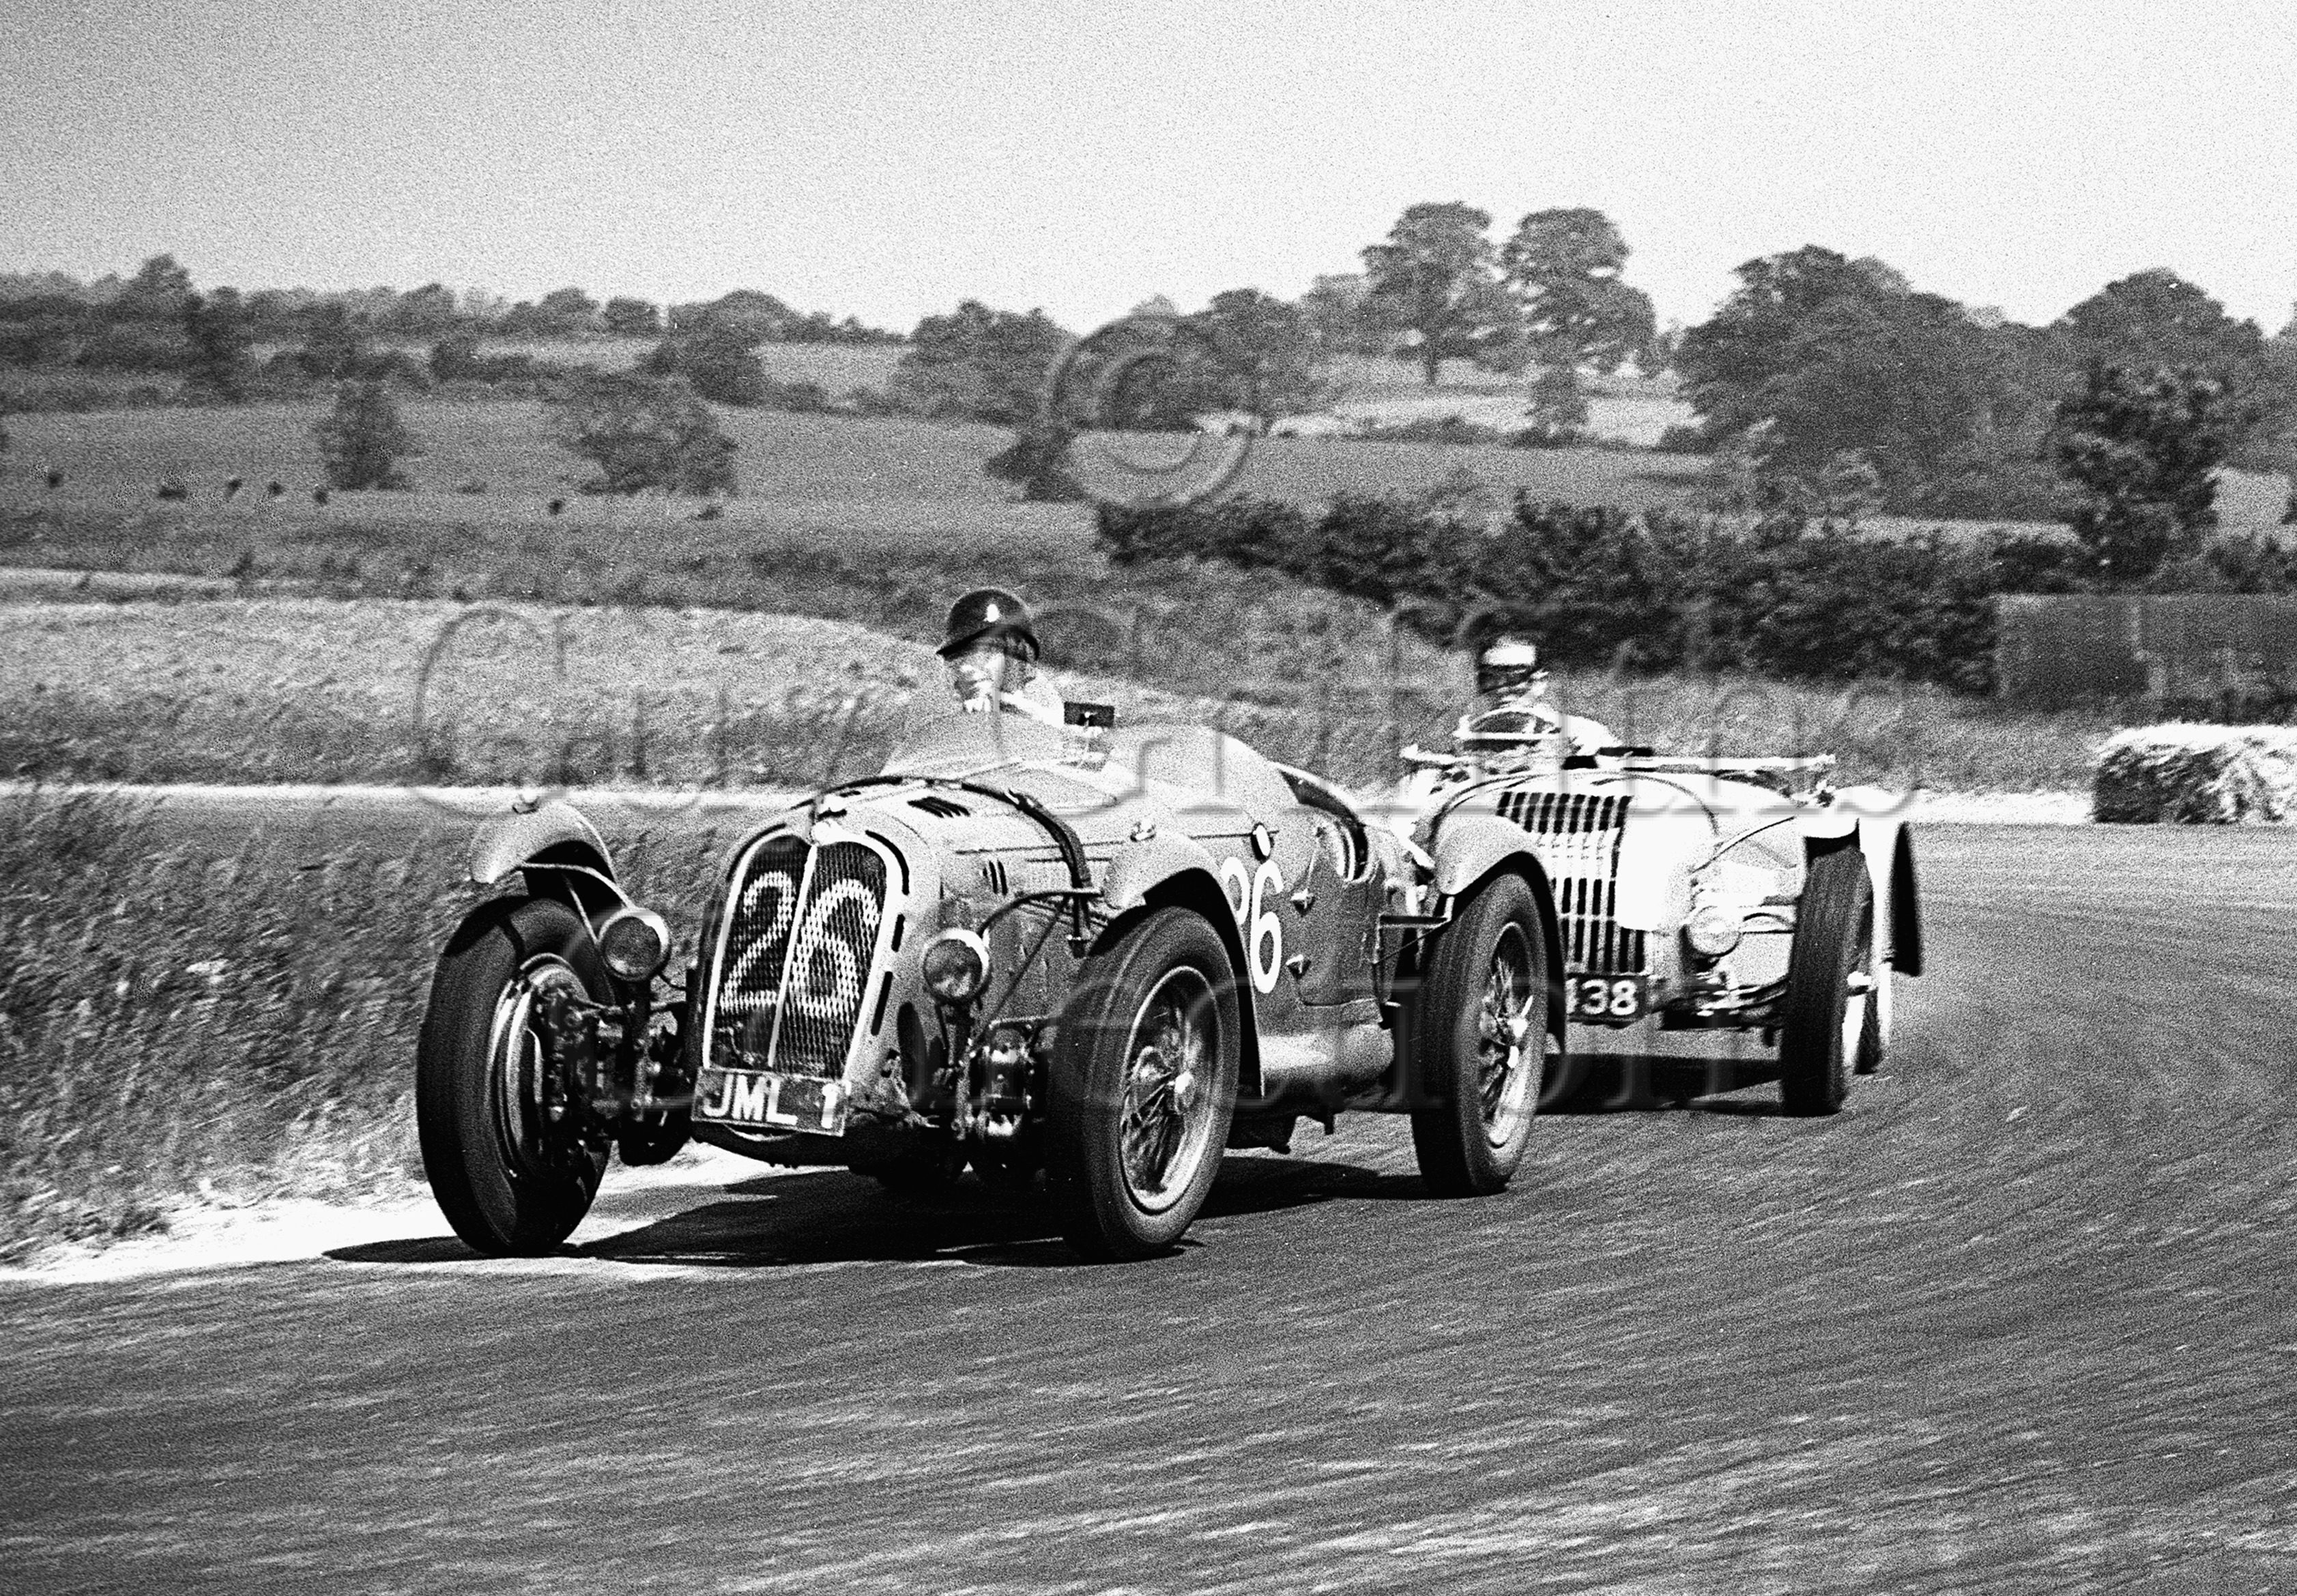 16-645–T-Crook–Alfa-Romeo-Crook–Silverstone–18-6-1949.jpg - The Guy Griffiths Collection